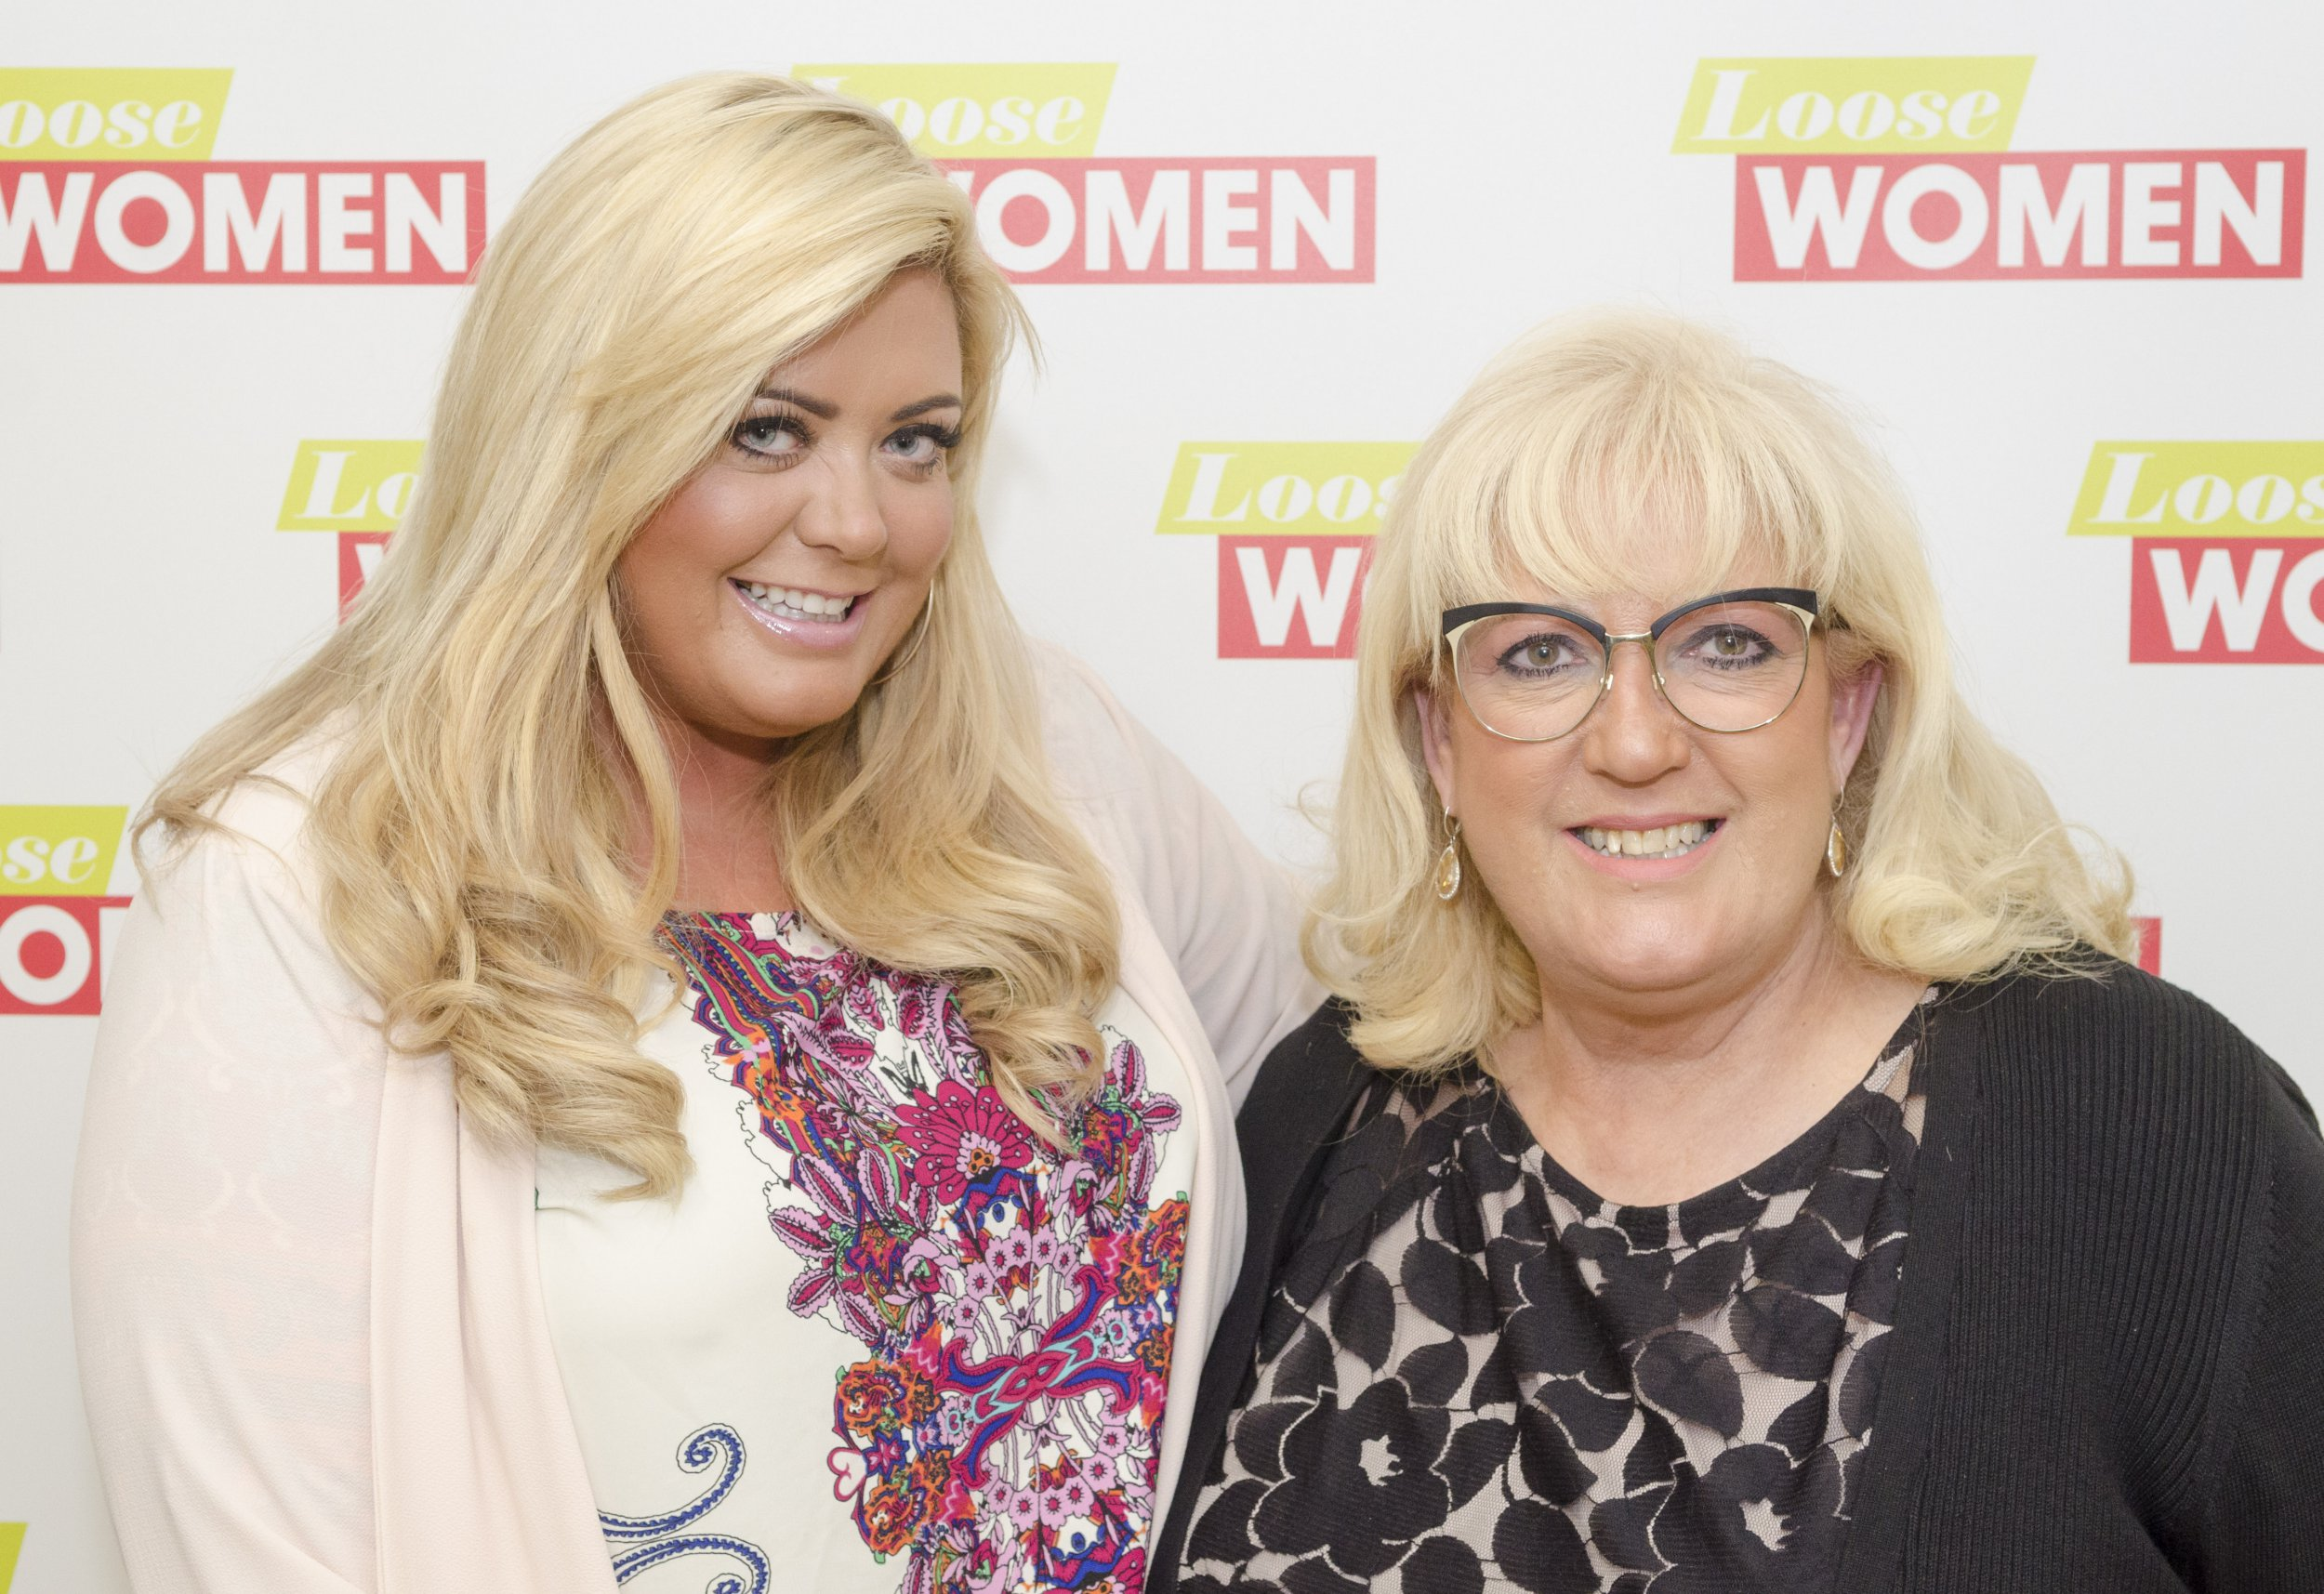 Editorial use only Mandatory Credit: Photo by S Meddle/ITV/REX/Shutterstock (5609595n) Gemma Collins and her mum Joan 'Loose Women' TV show, London, Britain - 04 Mar 2016